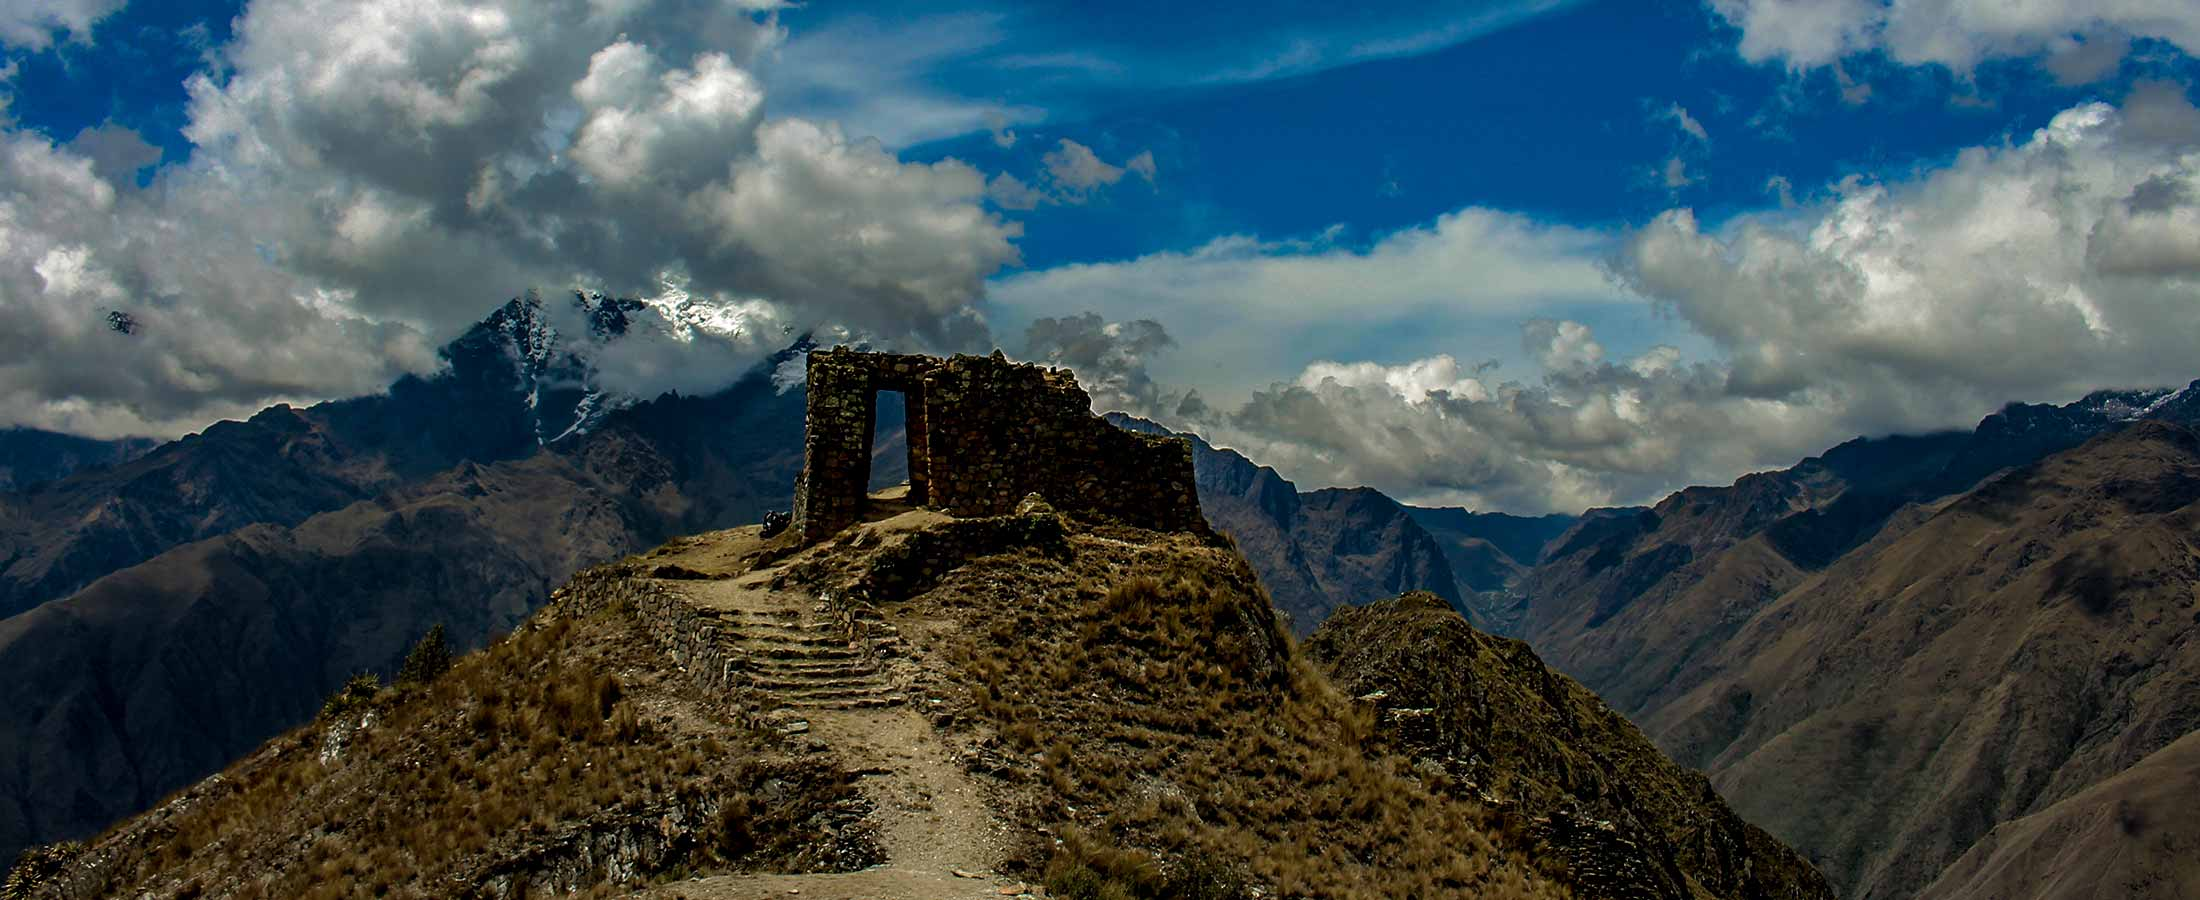 The Gate of the Sun on the Inca Quarry Trail Hike